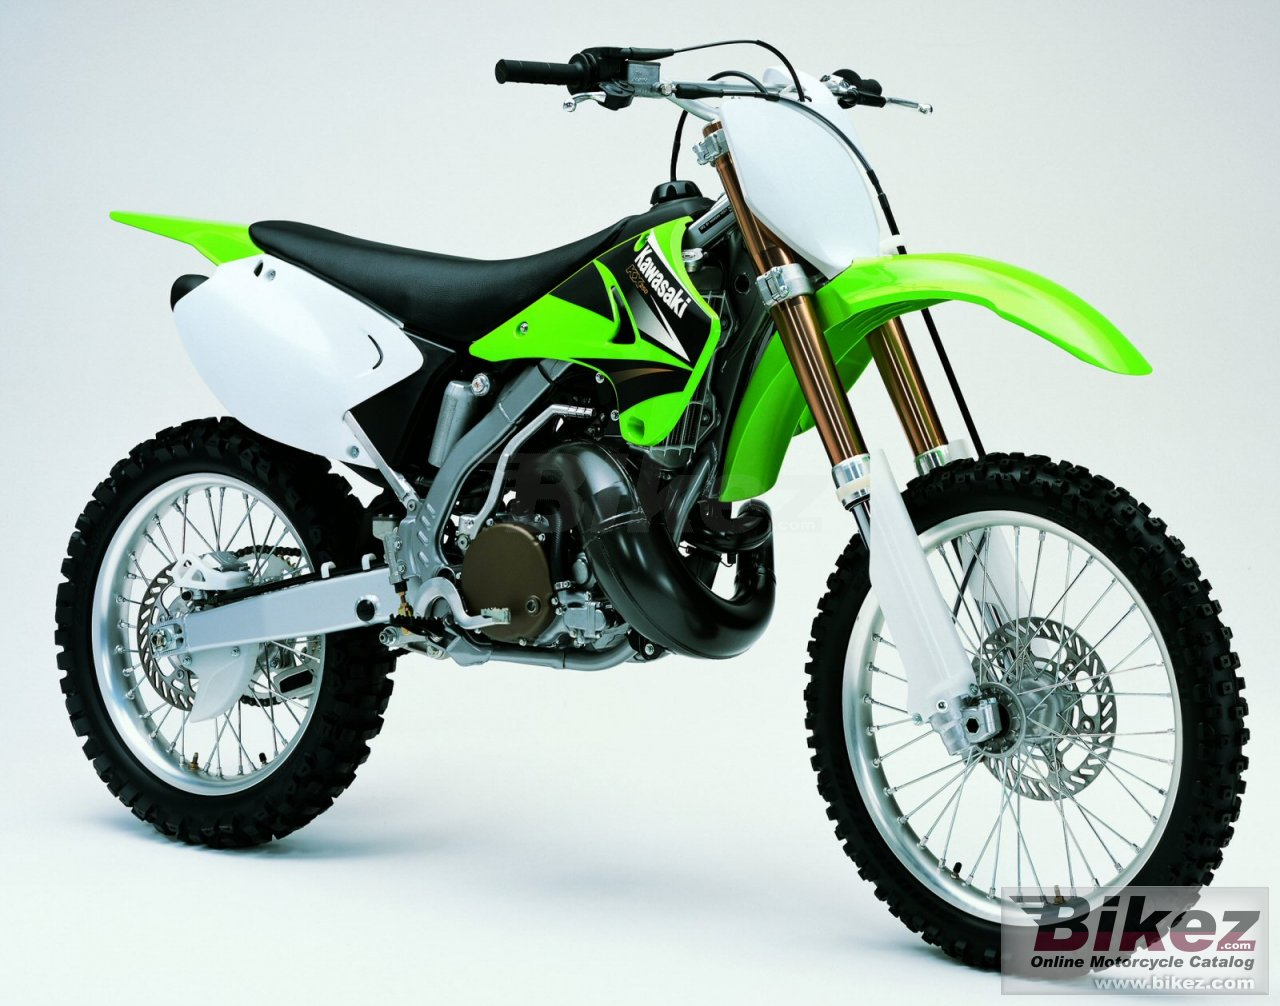 Big Kawasaki kx 250 picture and wallpaper from Bikez.com